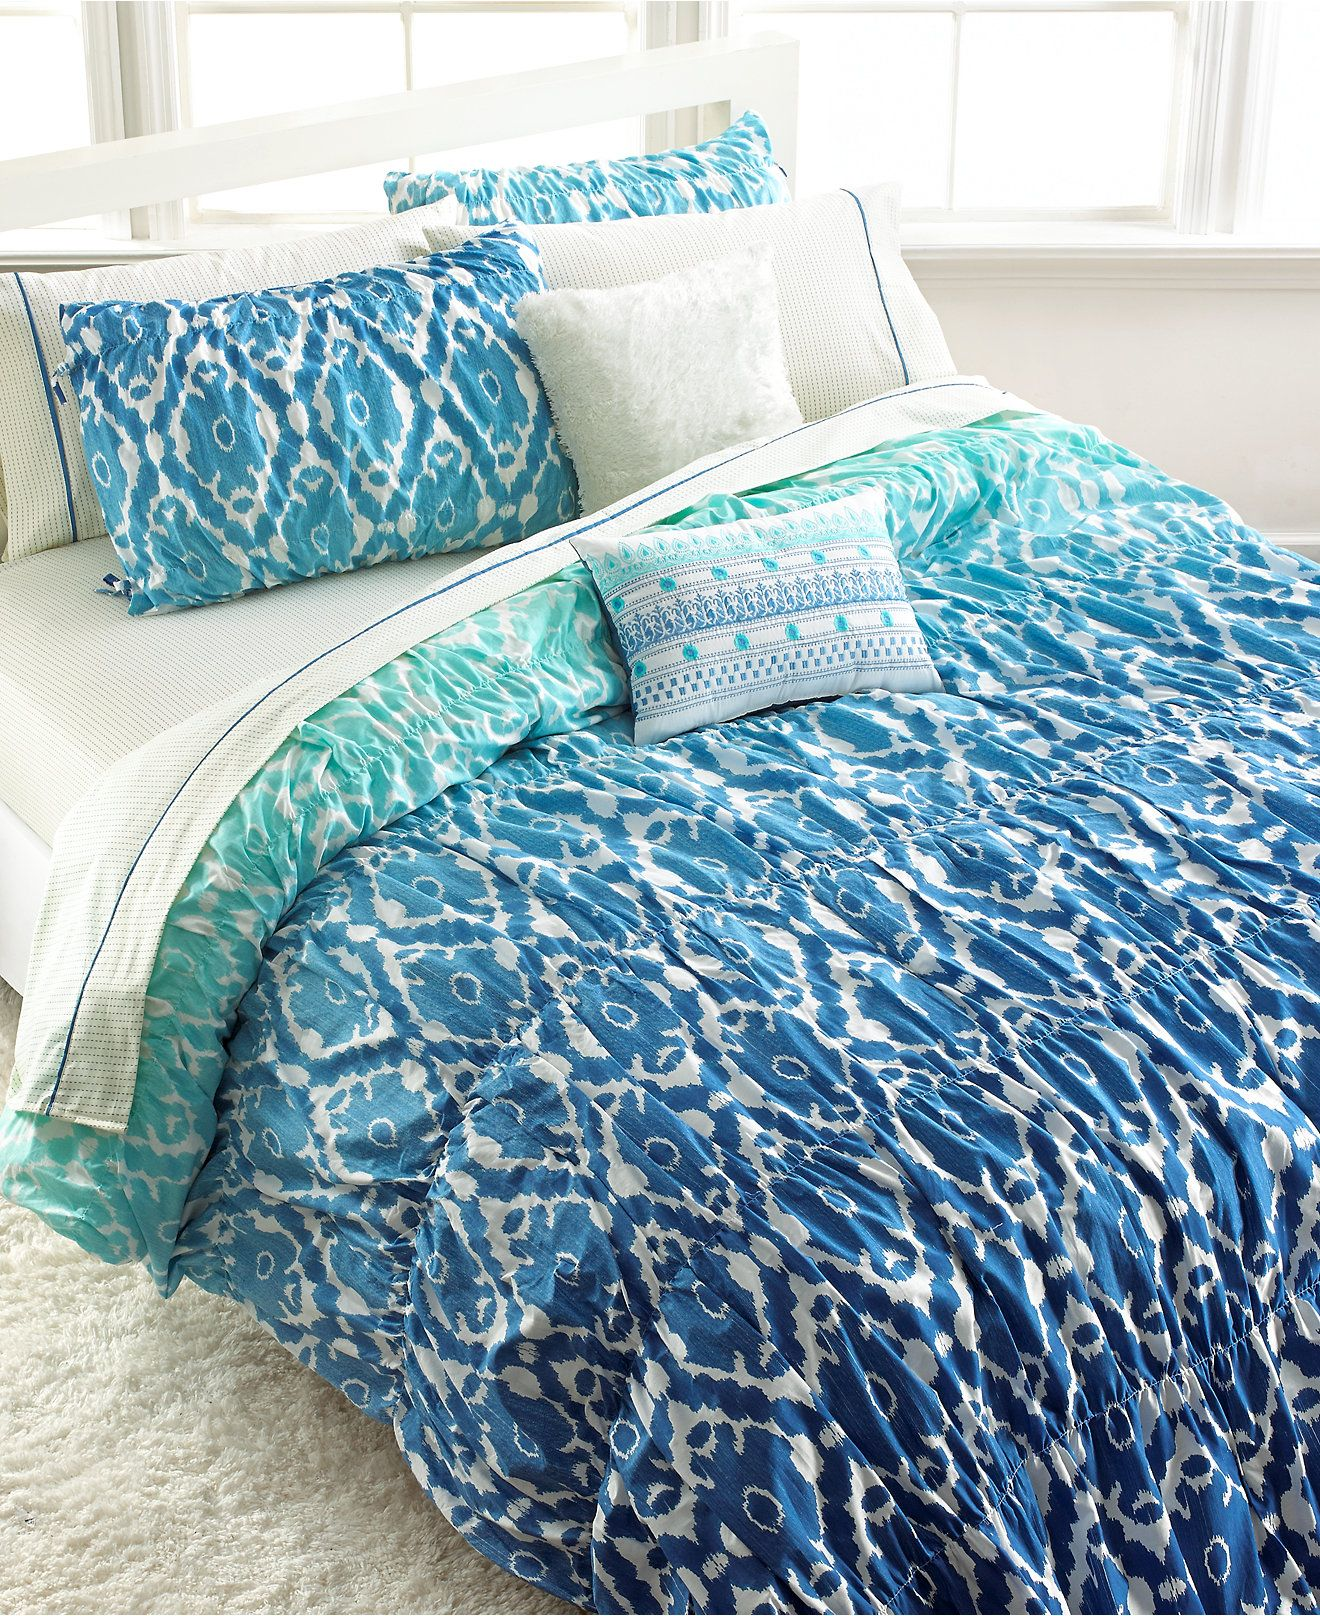 comforter hero mermaid sketch largeimages res product the hi hot blue topic disney ombre queen zoom little pdp loading full